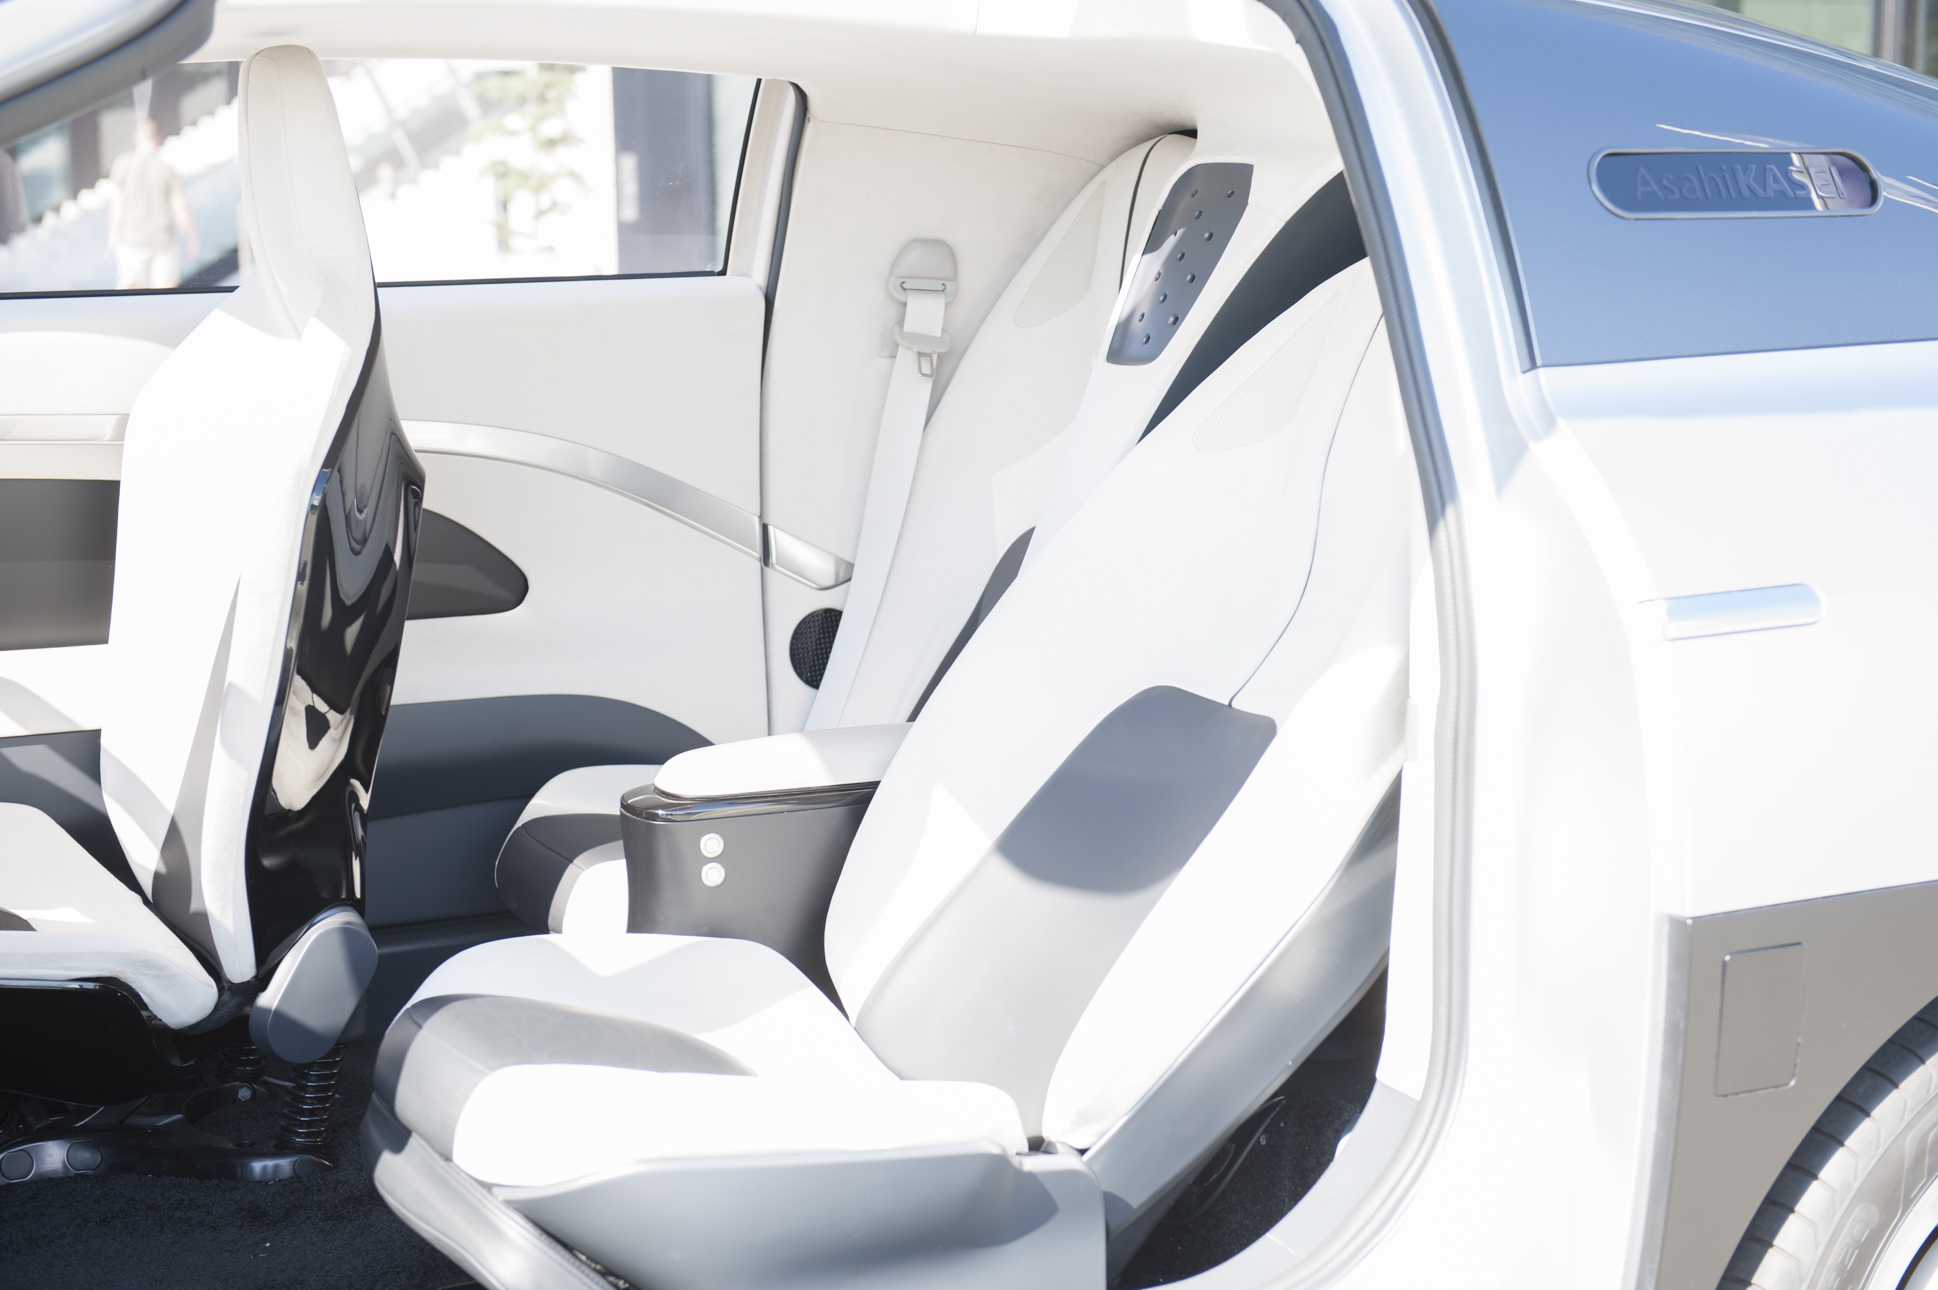 According to Asahi Kasei, the automotive interior of the future will become a new living space (Source: Asahi Kasei)